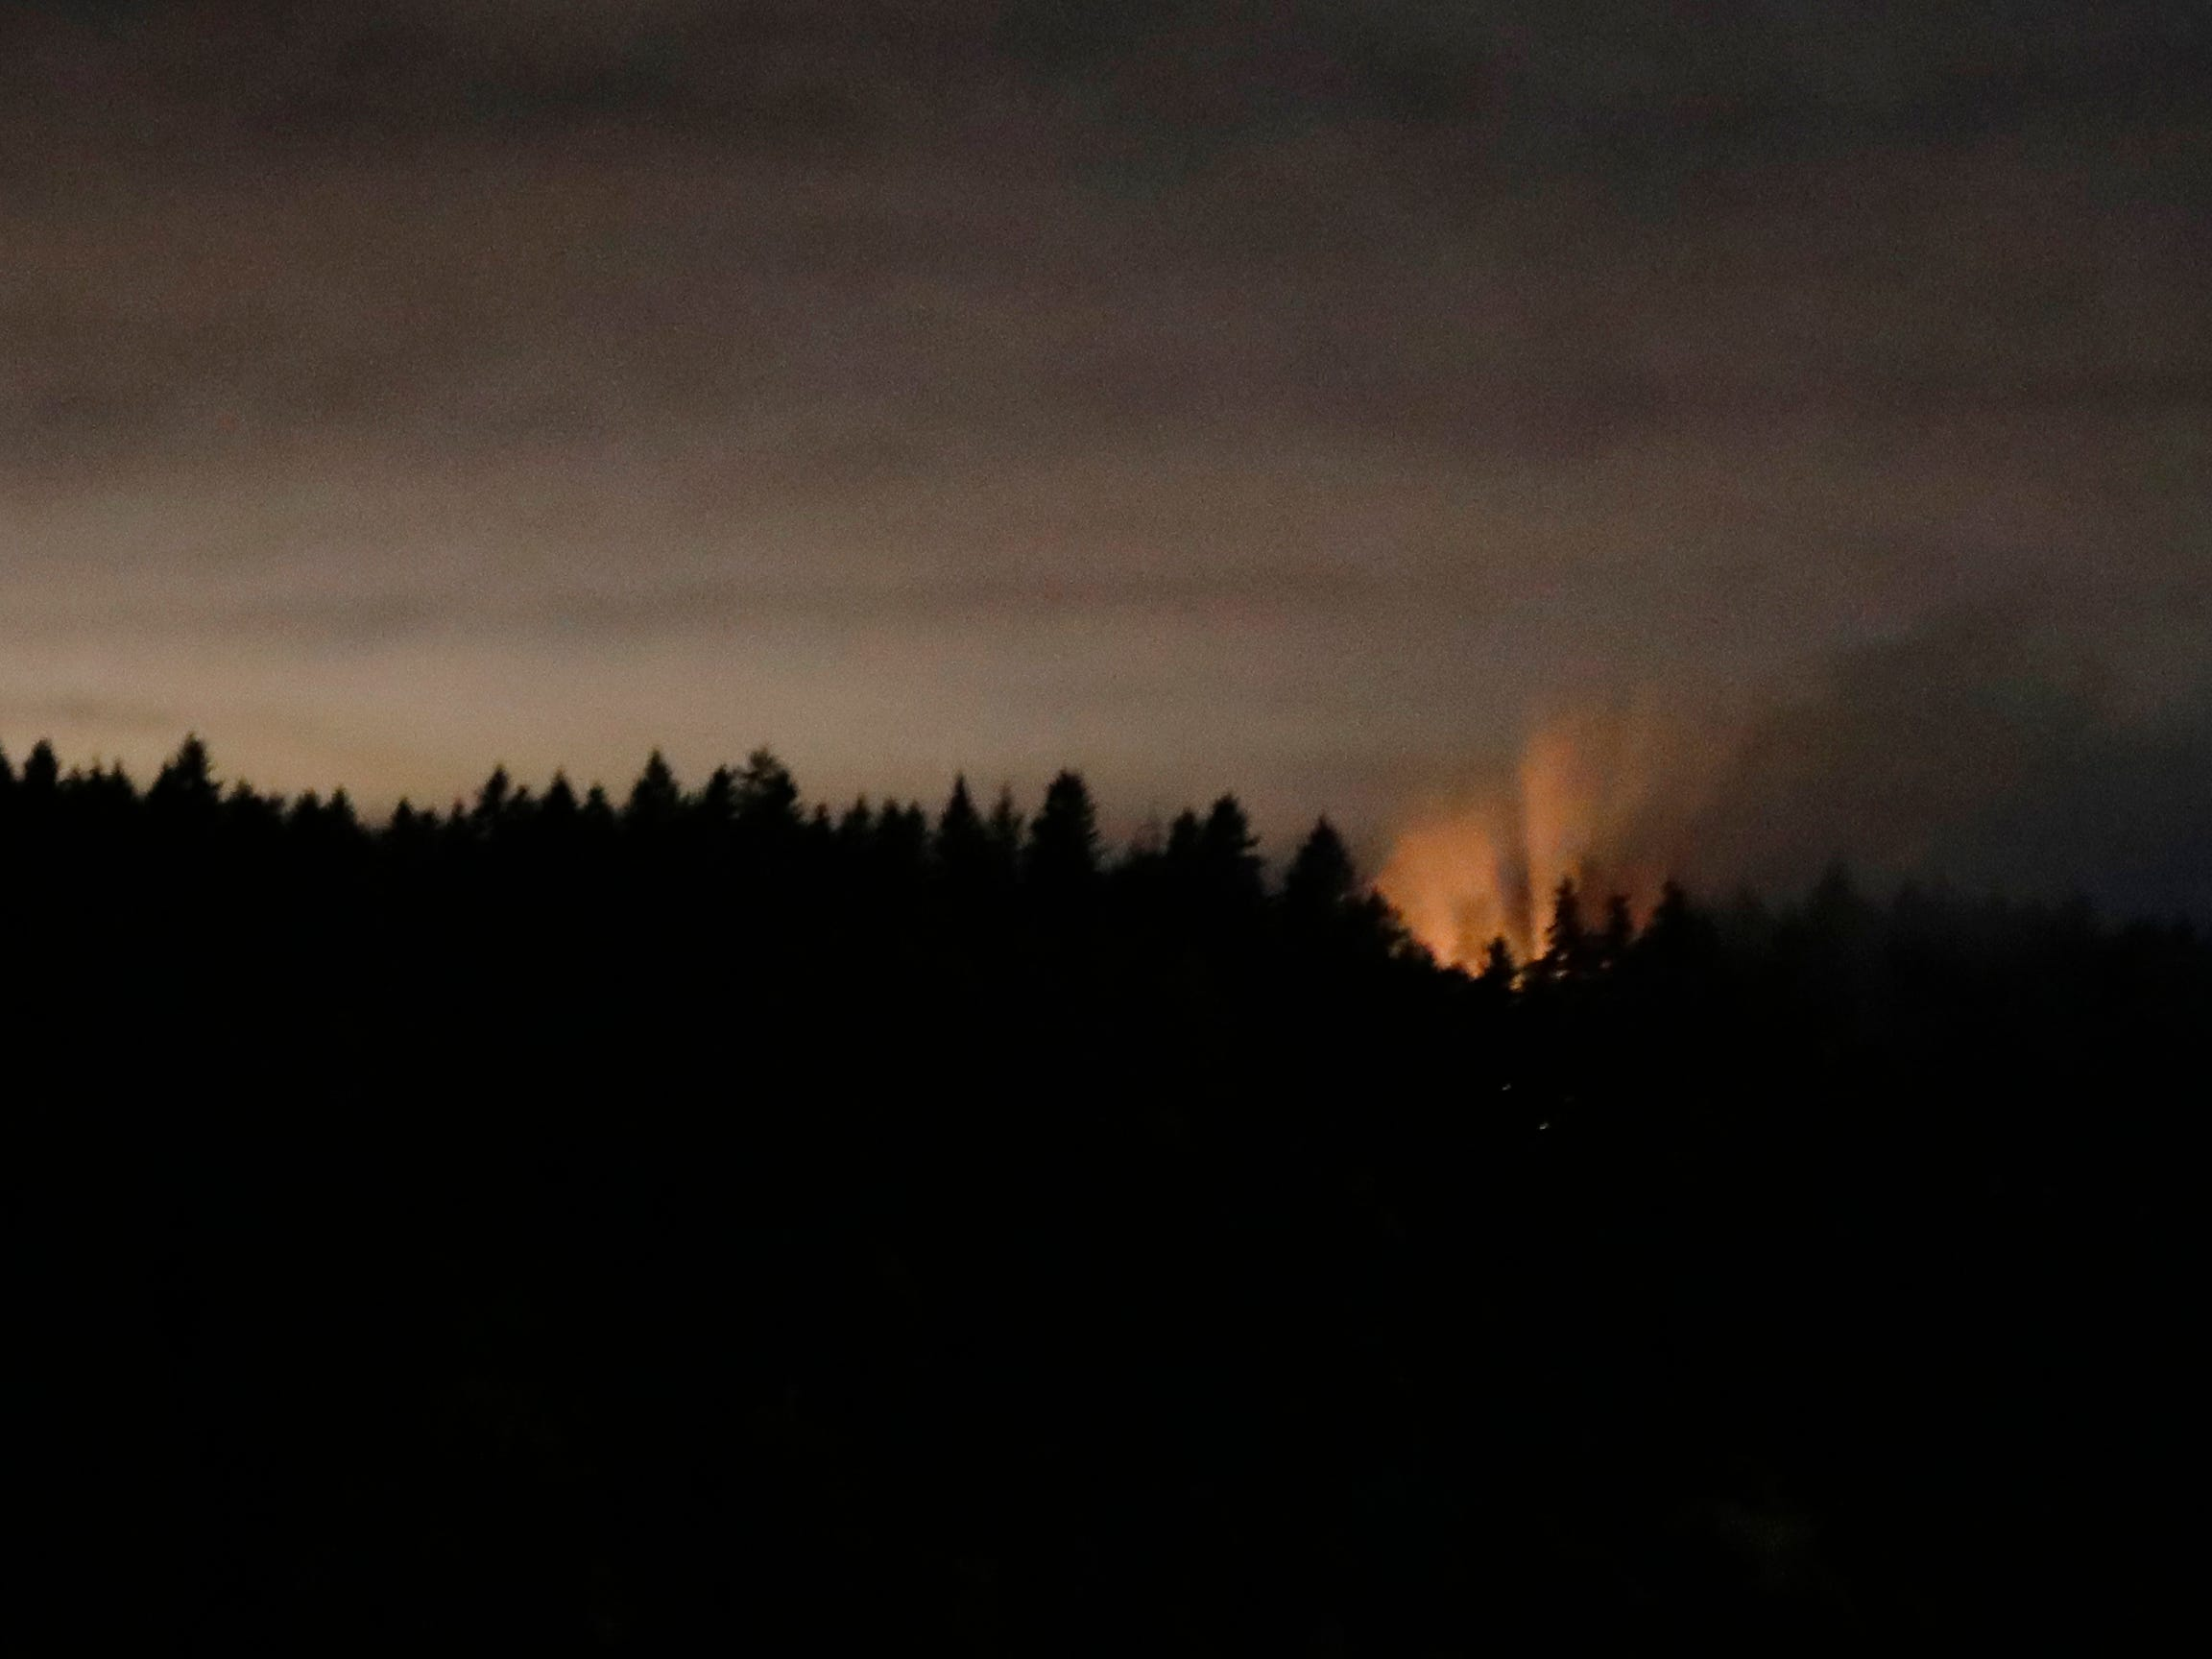 In this long-exposure photo, smoke and an orange glow are seen on Ketron Island in Washington state, early Saturday, Aug. 11, 2018 as viewed from near Steilacoom, Wash. On Friday, an airline mechanic stole an empty Horizon Air turboprop plane, took off from Seattle-Tacoma International Airport and was chased by military jets before crashing onto Ketron, a small island in the Puget Sound, on Friday night, officials said.